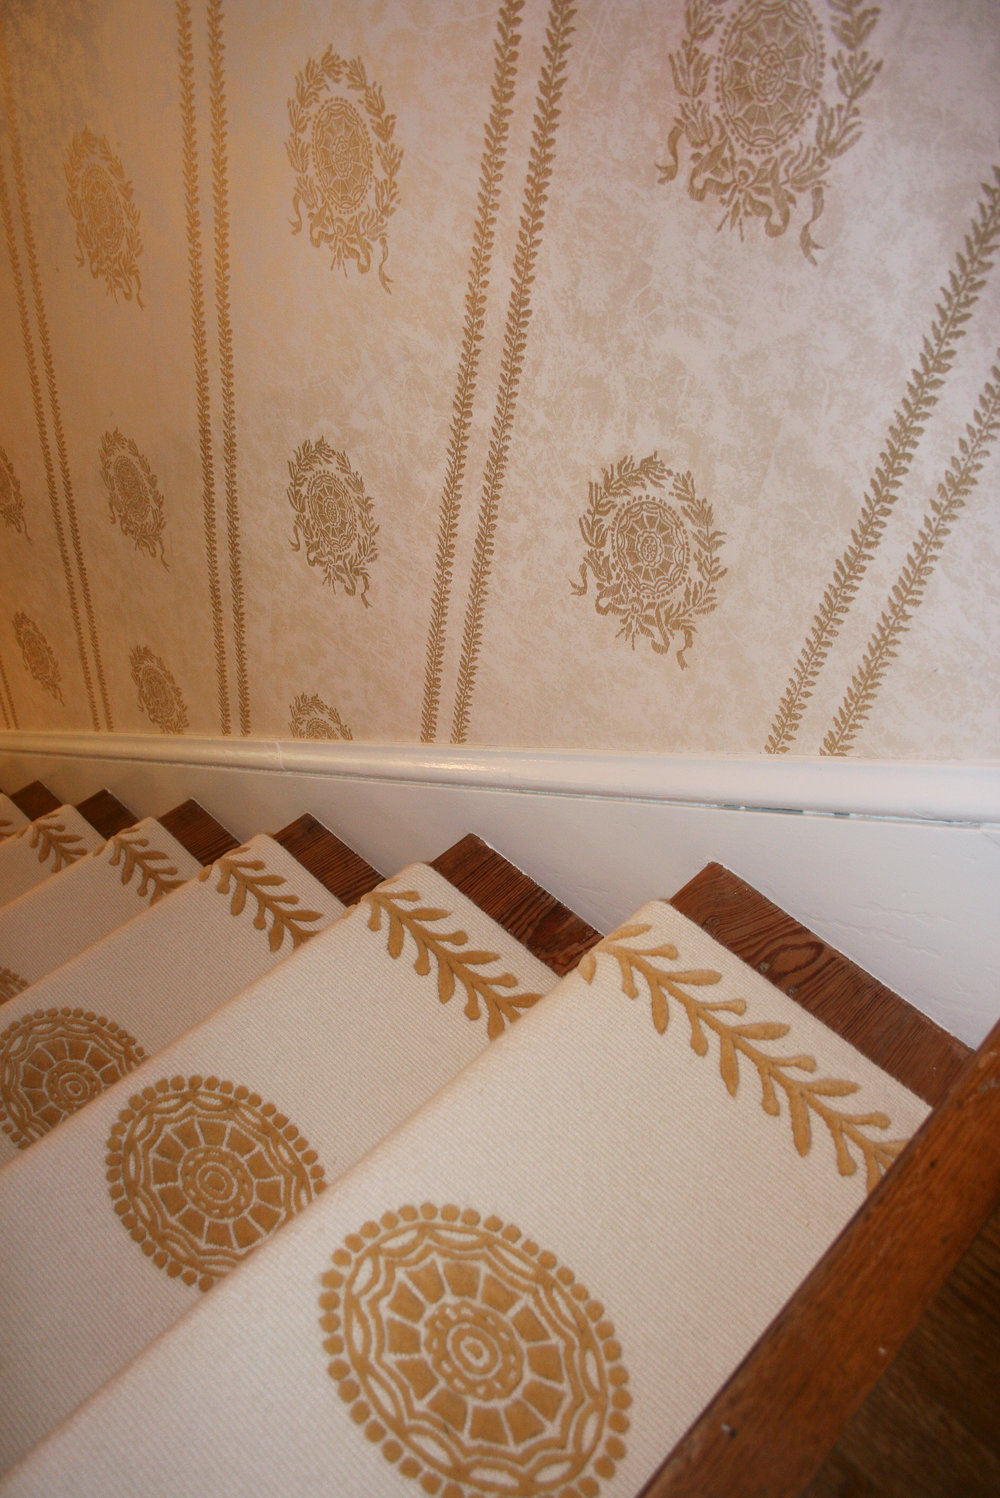 Beautiful custom design and custom installation stair runner in ivory and gold with a medallion to match the intricate wallpaper